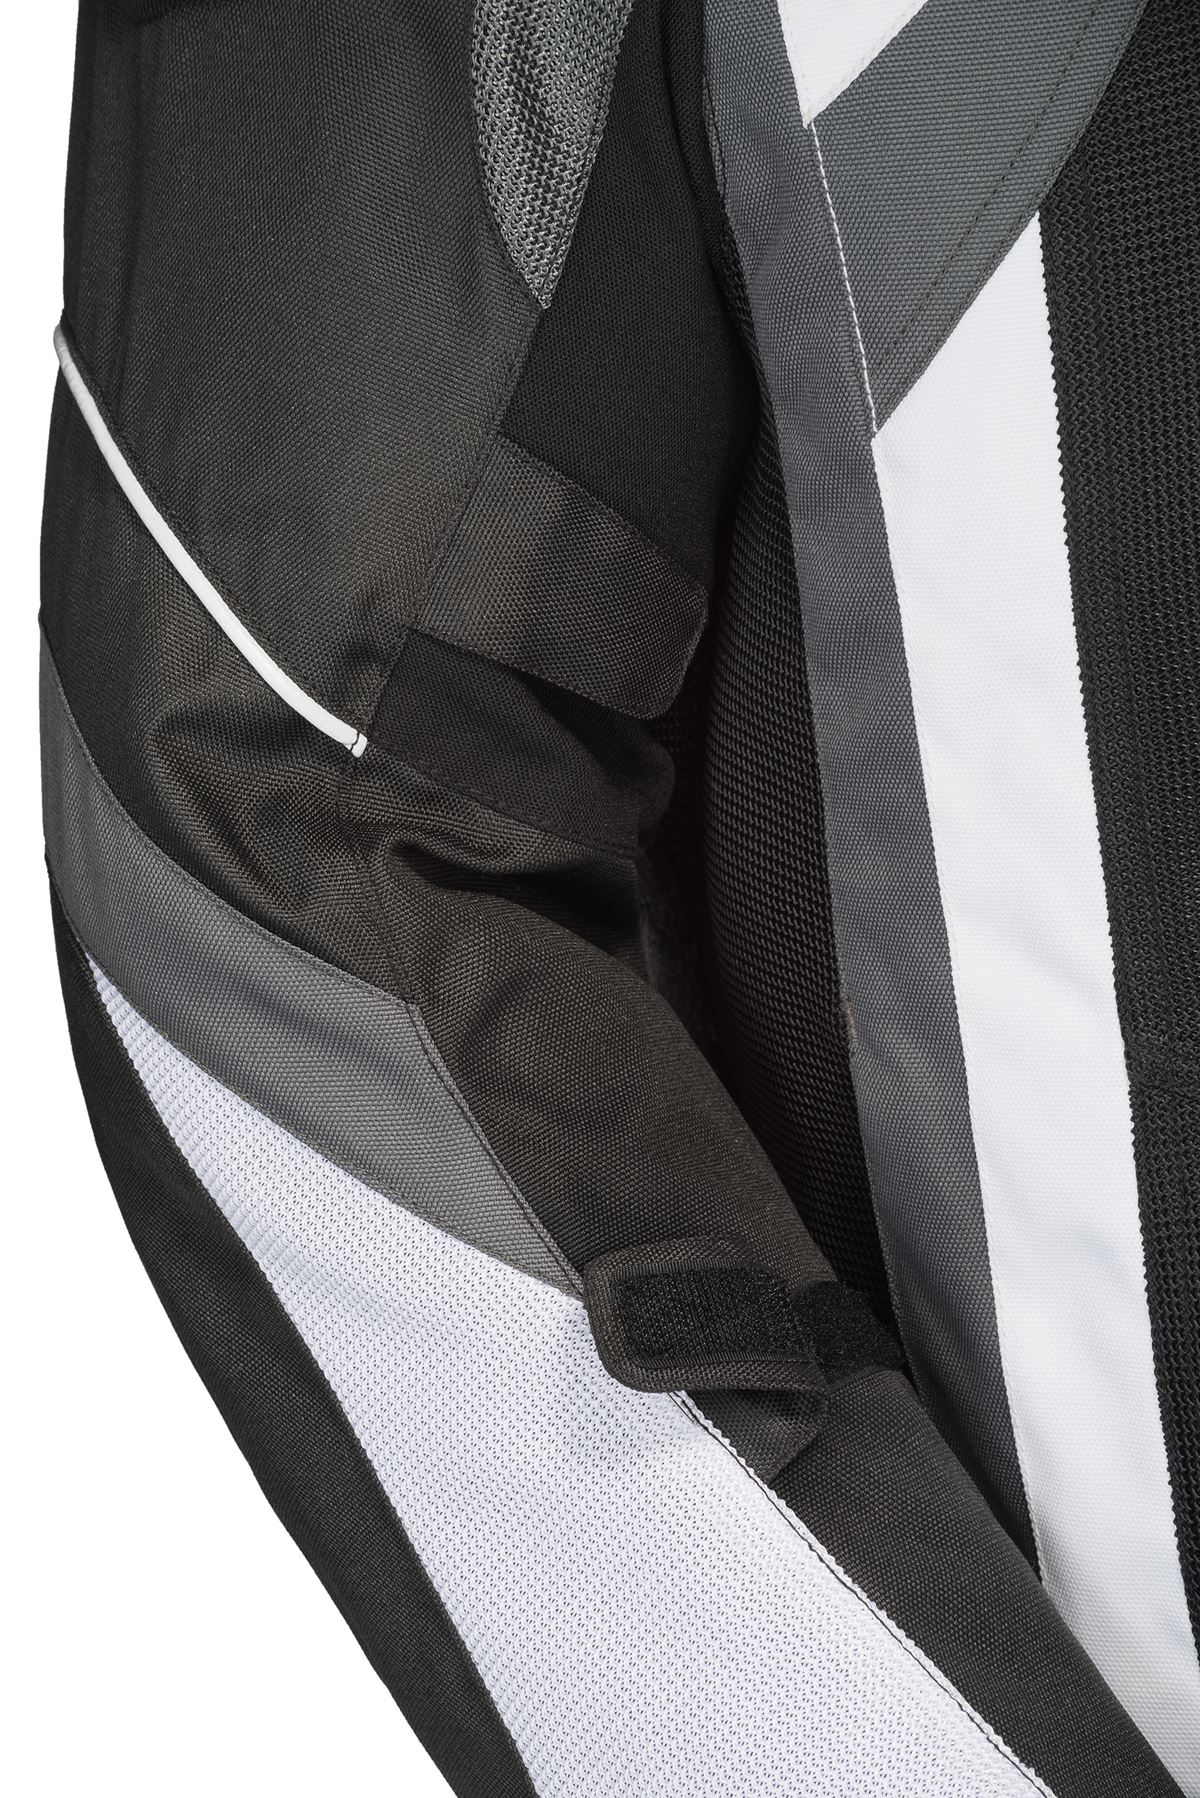 Cortech-VRX-Air-Textile-Motorcycle-Jacket-Waterproof-Mild-Hot-Weather-XS-3XL thumbnail 6